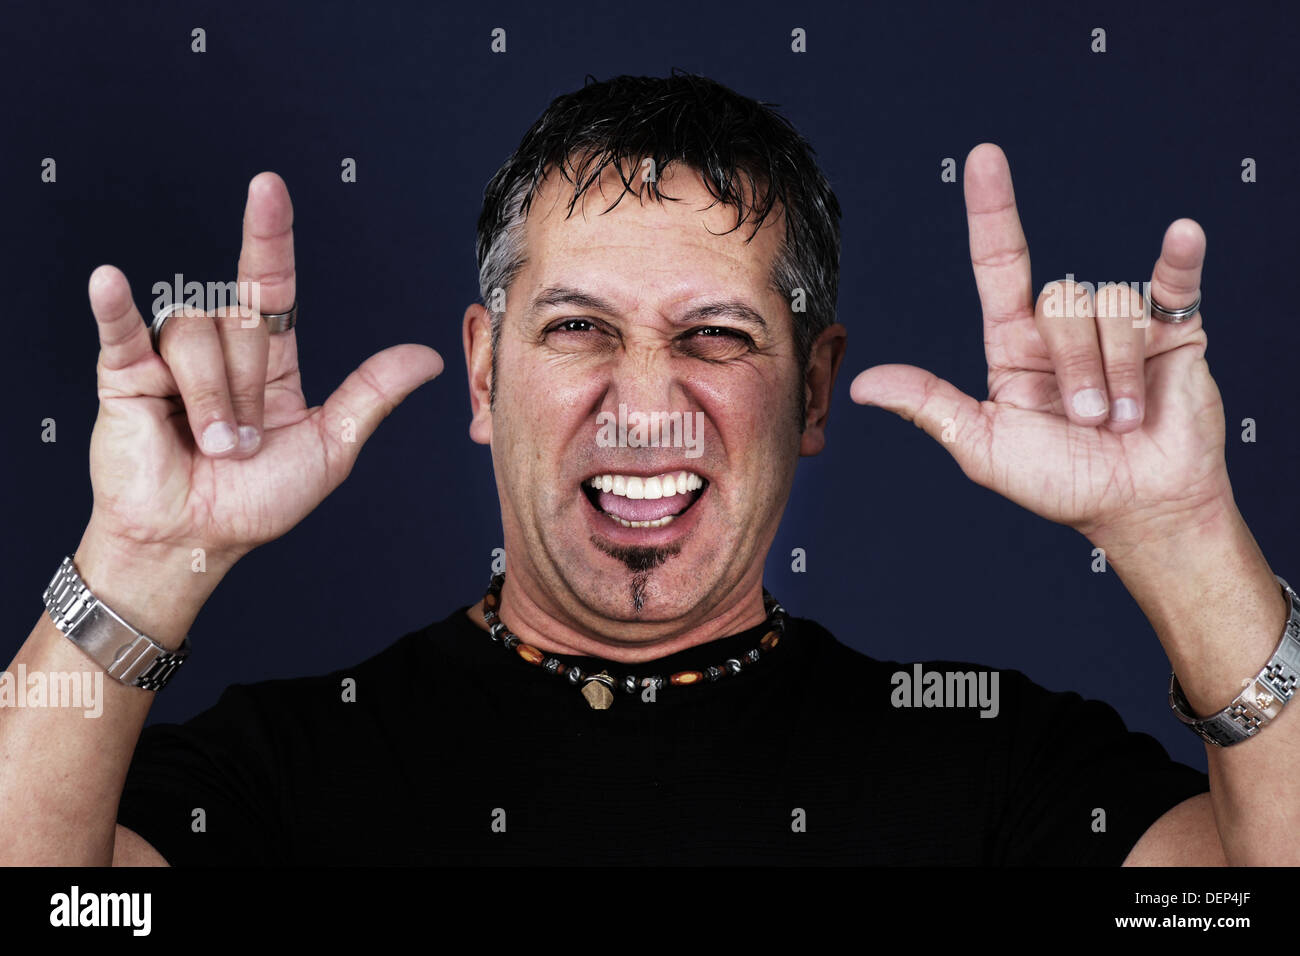 Middle aged man making the devil hand gesture or symbol stock middle aged man making the devil hand gesture or symbol buycottarizona